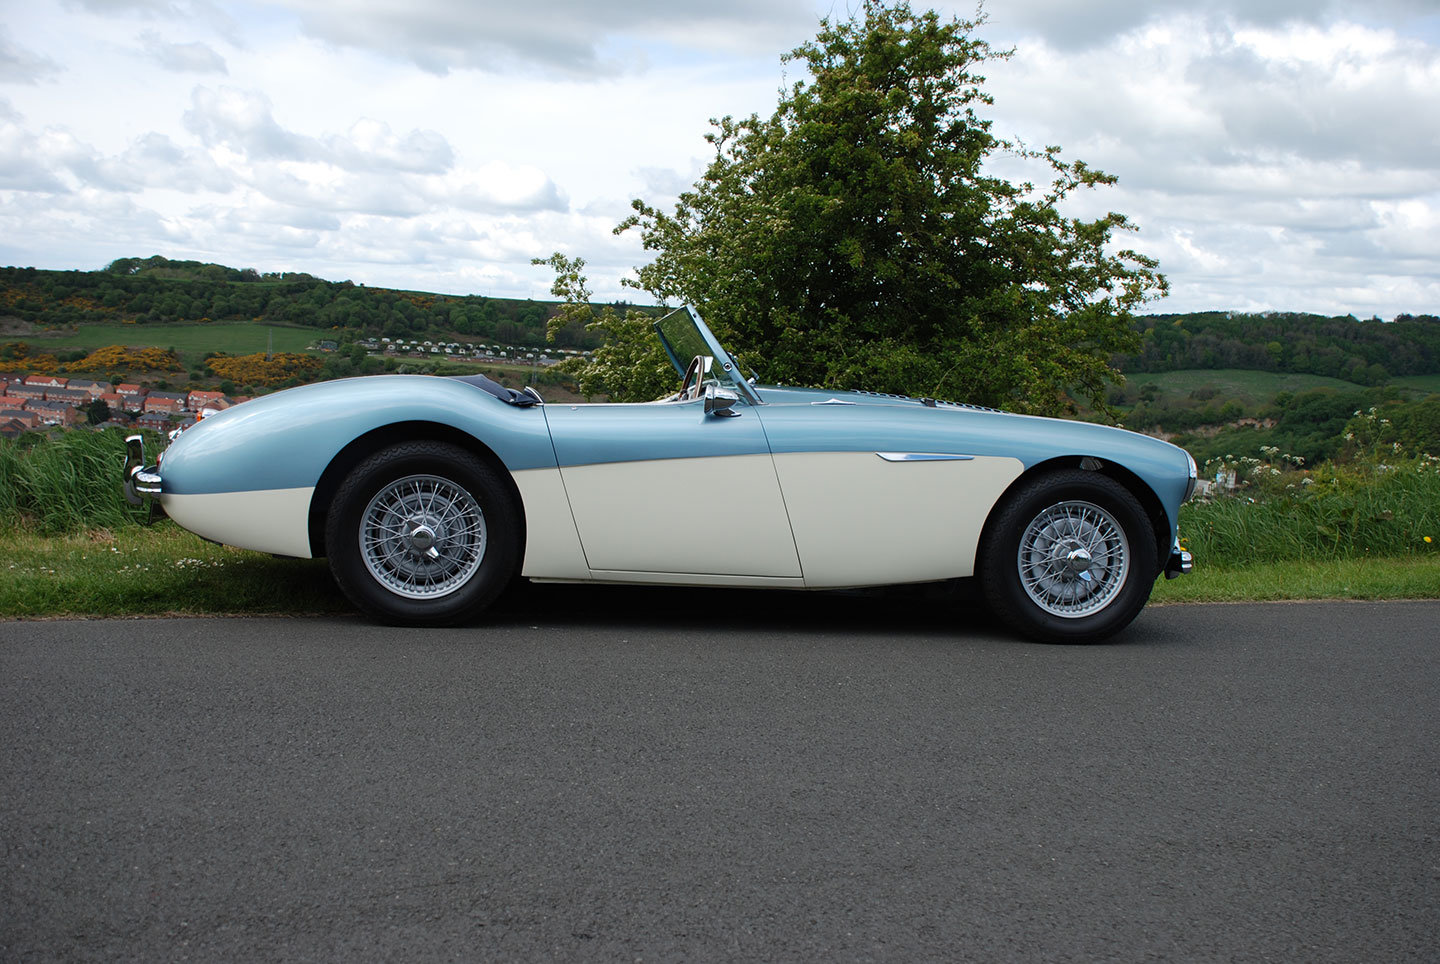 1955 Austin Healey 100/4 BN2 M Specification For Sale (picture 3 of 10)